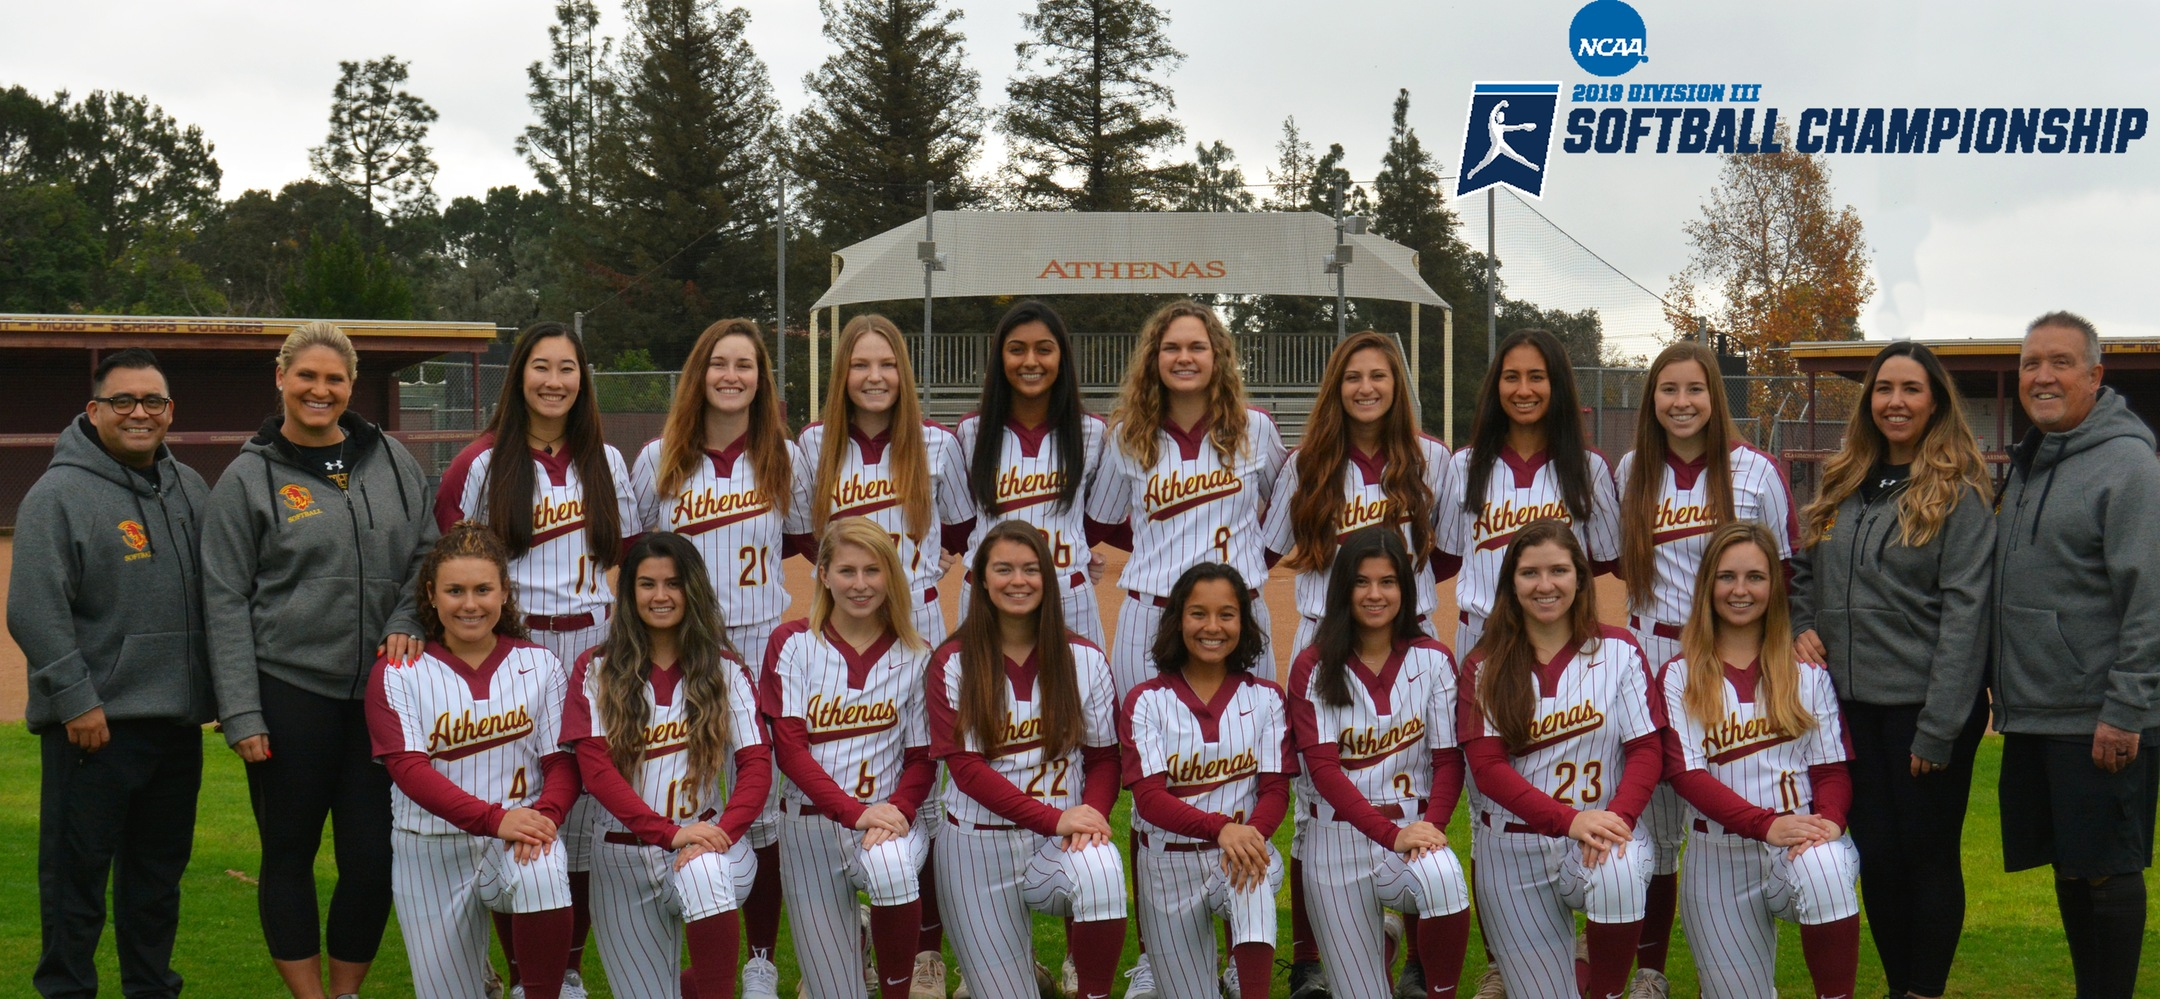 CMS Softball Hosts NCAA Regional, Beginning on Friday